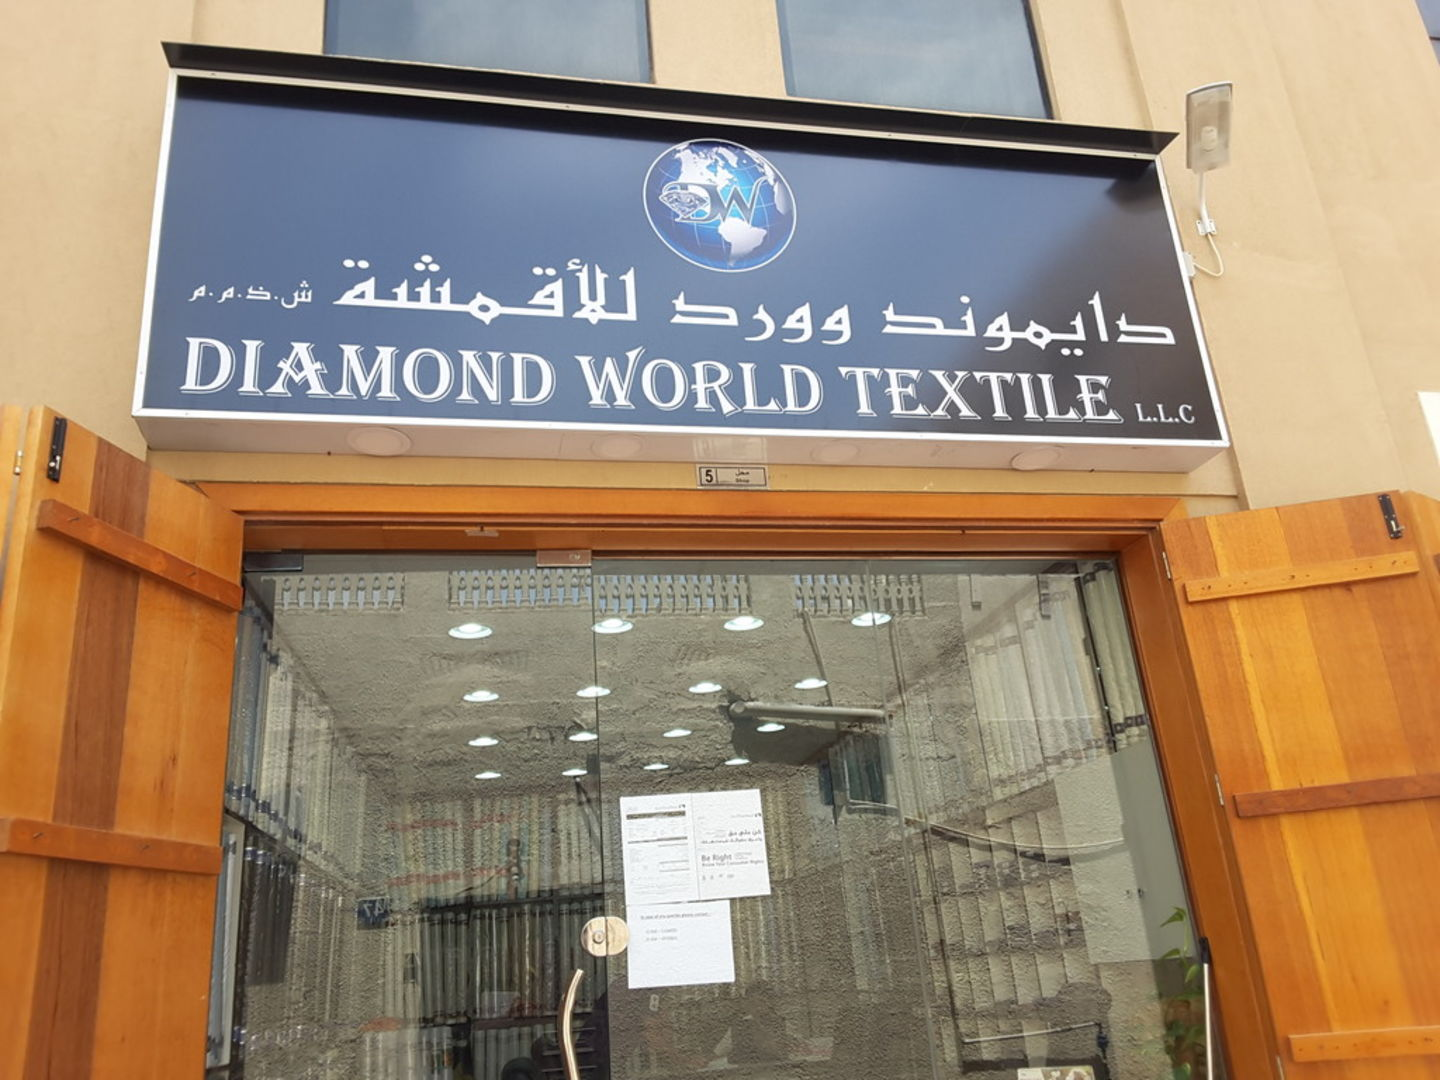 Walif-business-diamond-world-textile